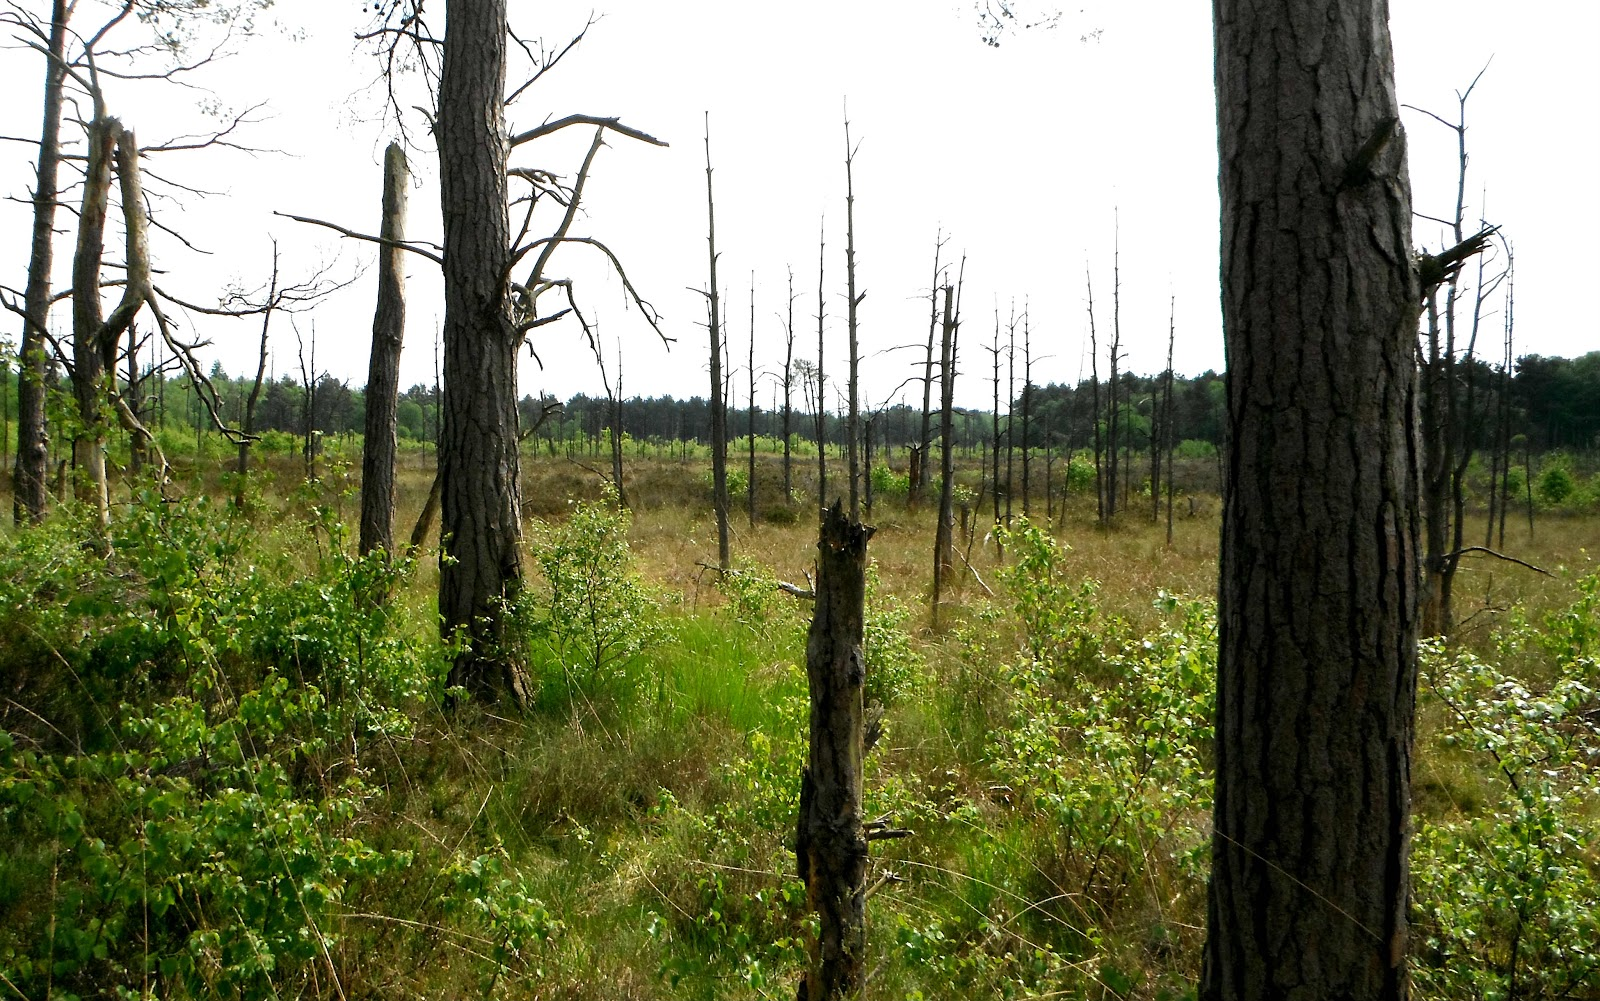 Dead pines at Chartley Moss